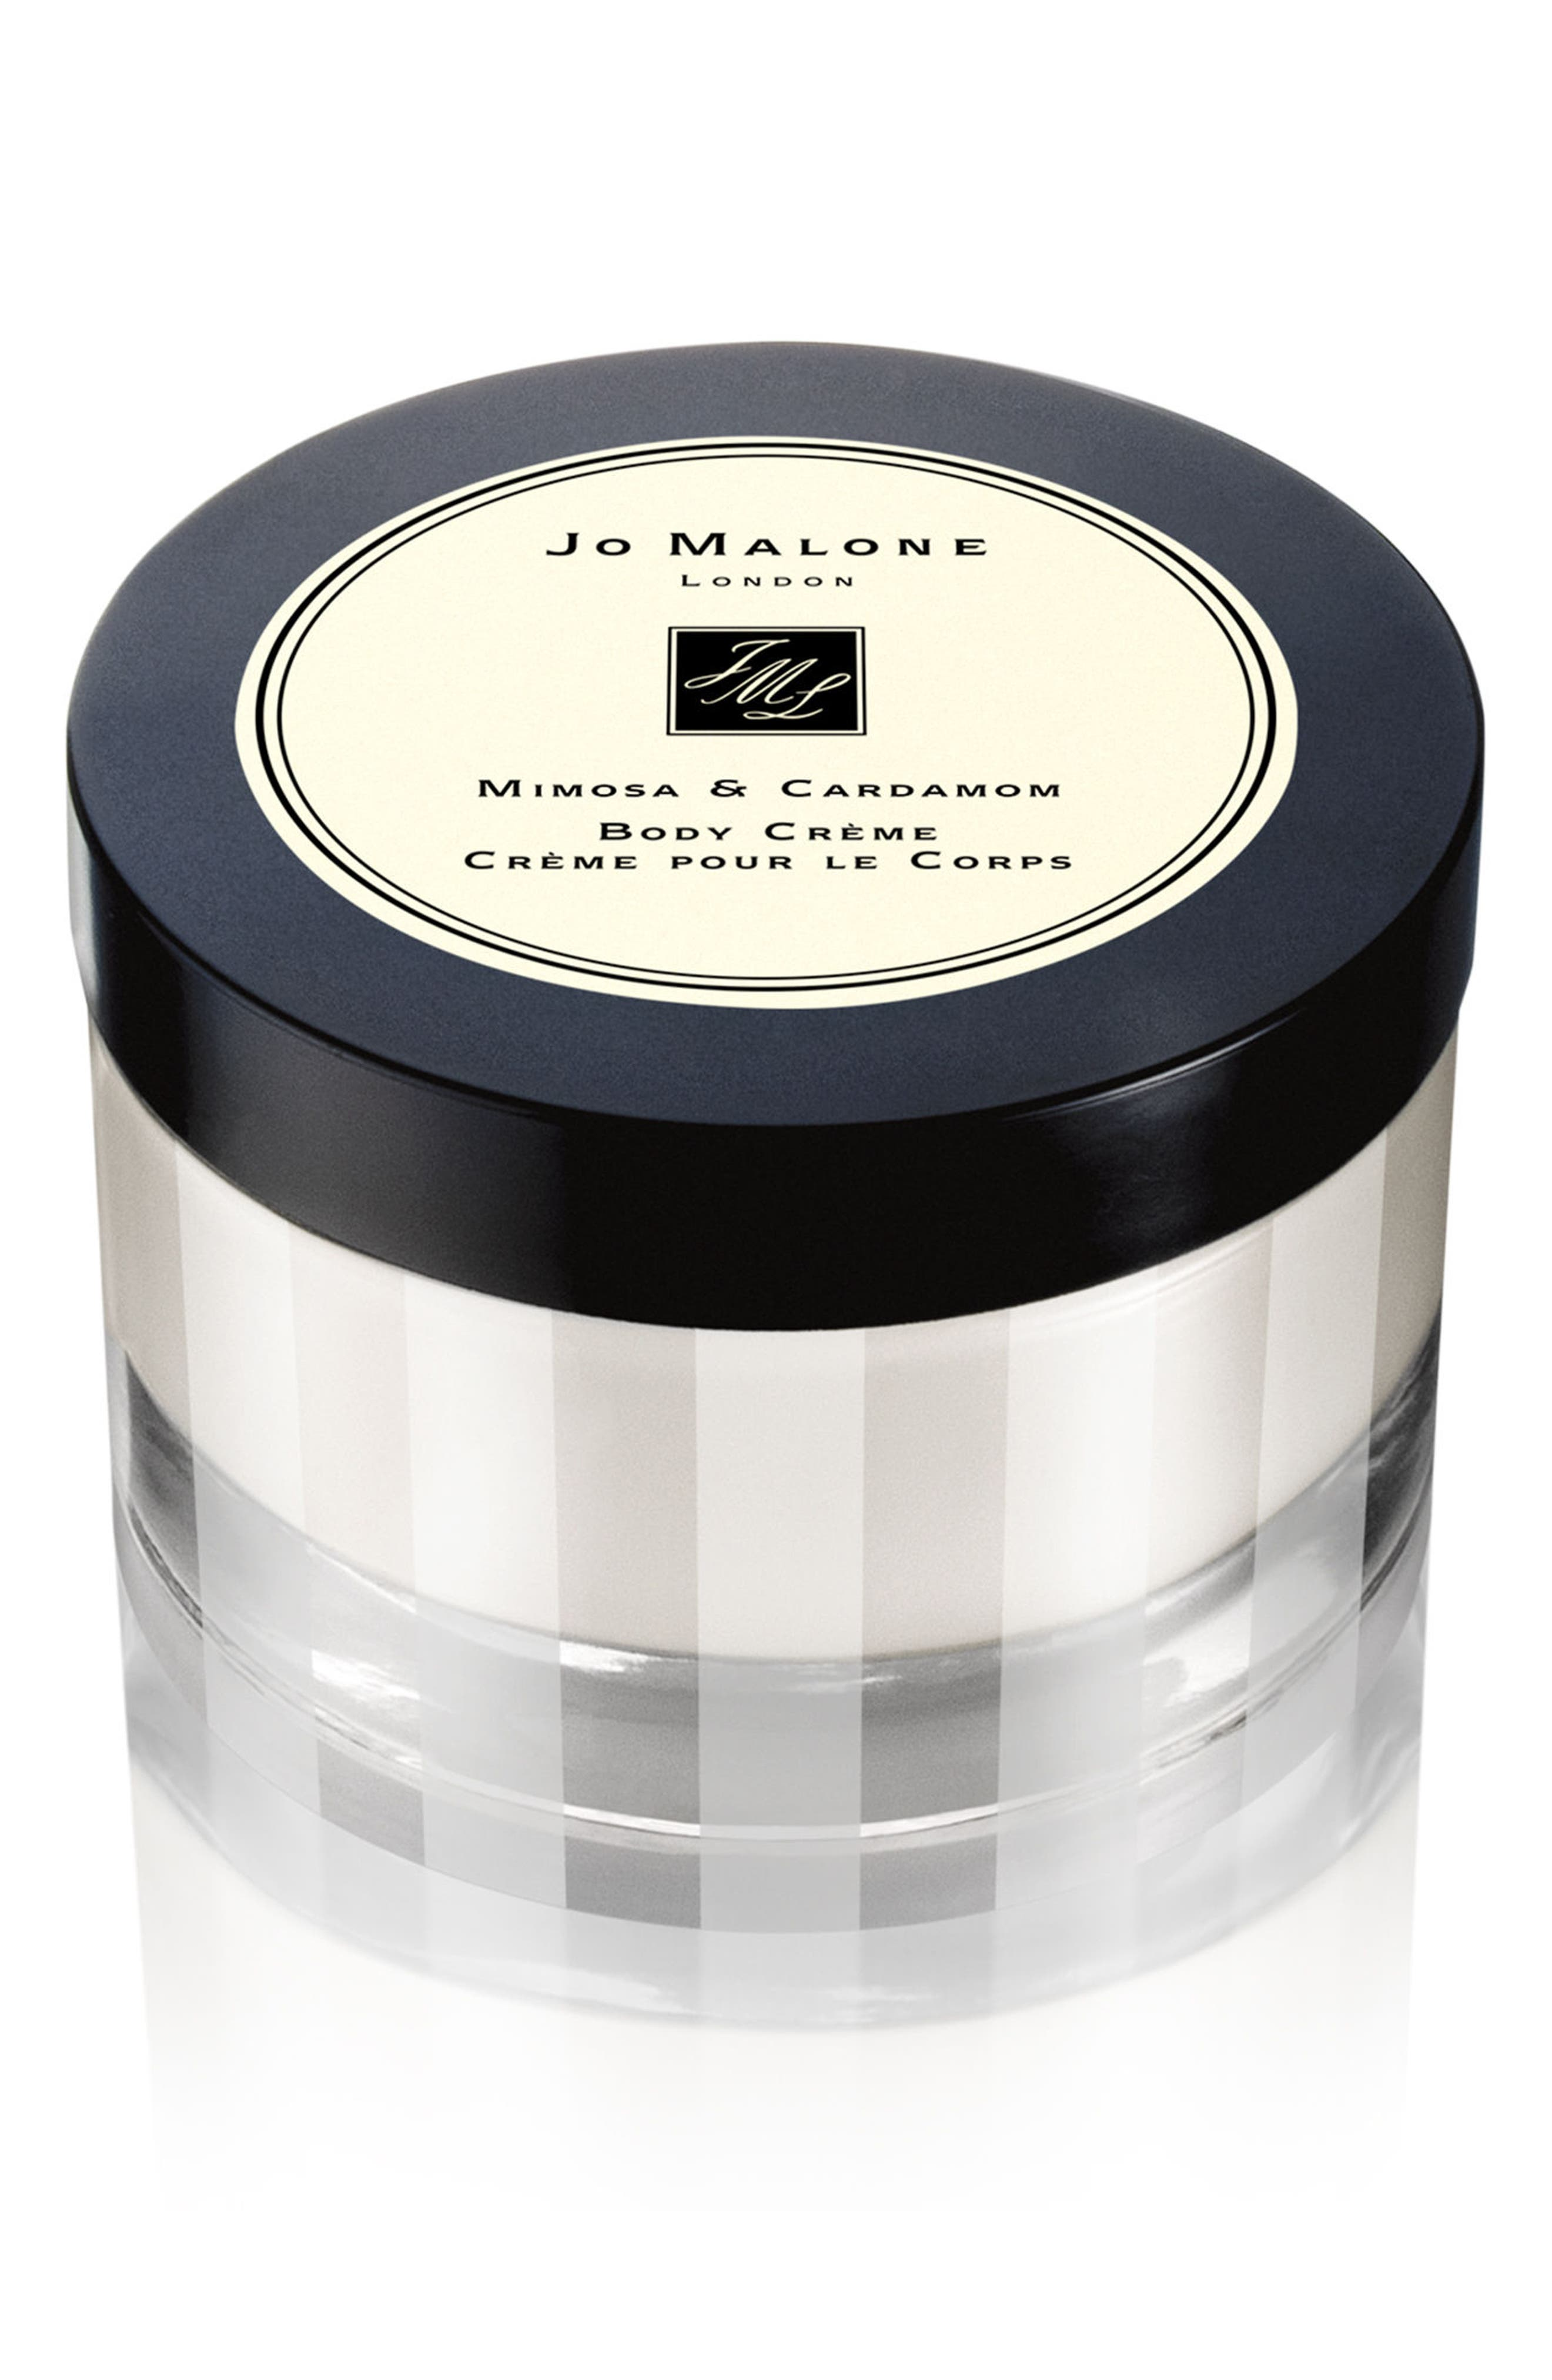 JO MALONE LONDON™ 'Mimosa & Cardamom' Body Crème